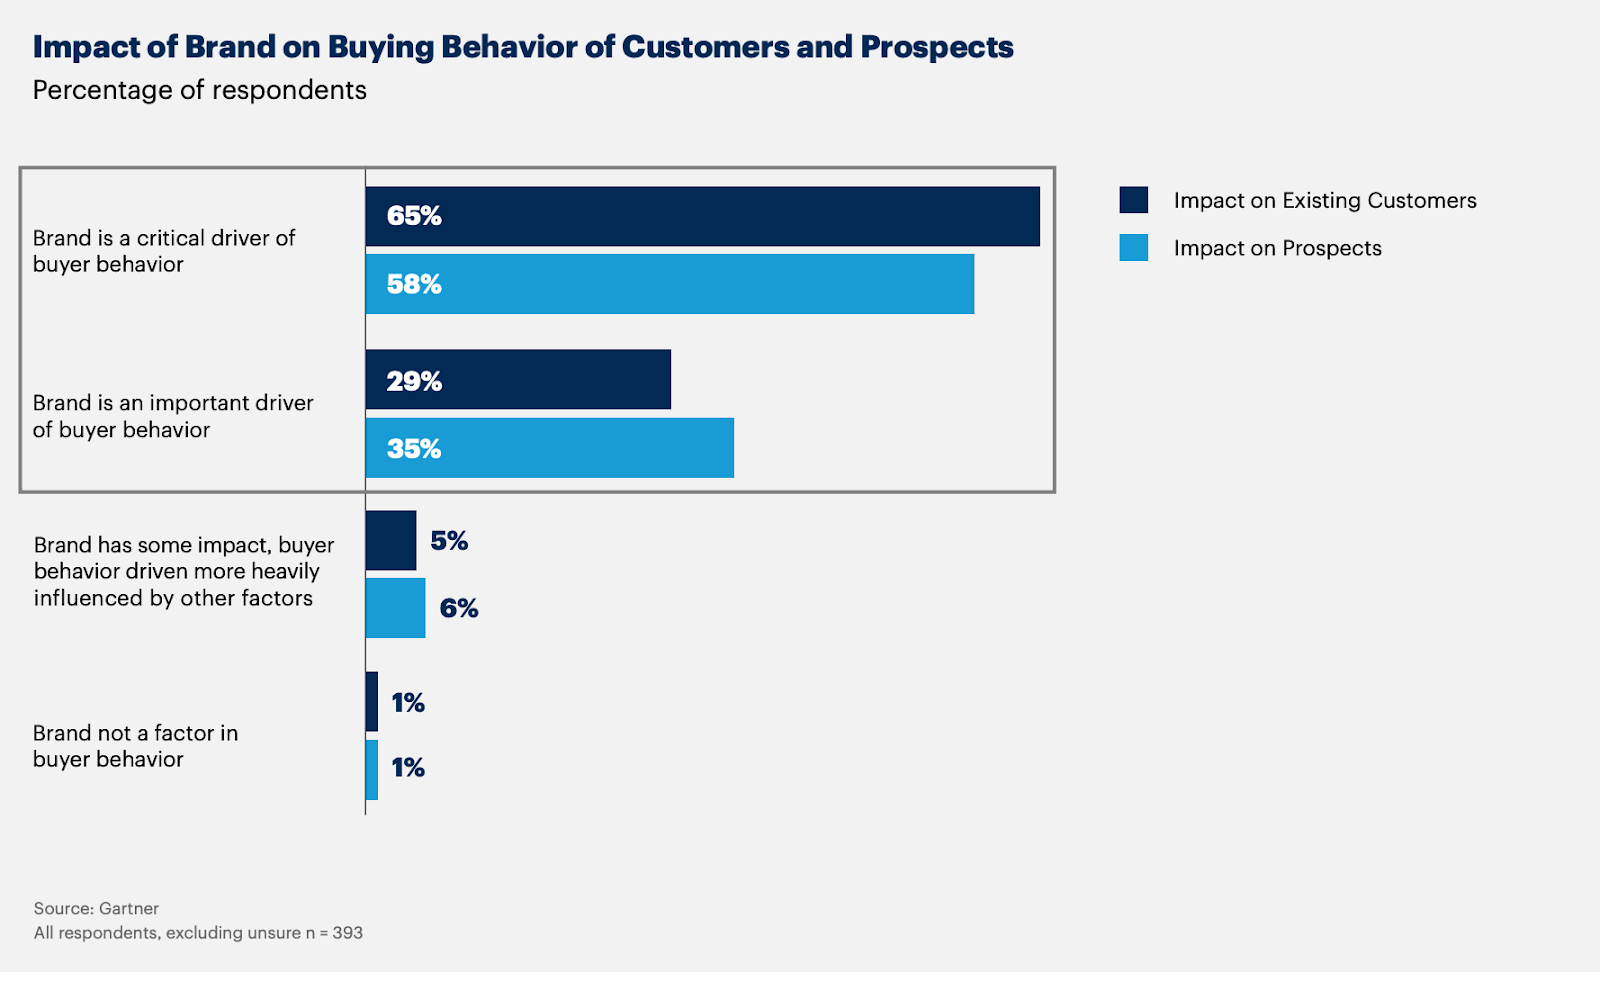 Impact of Brand on Buying Behavior of Customers and Prospects